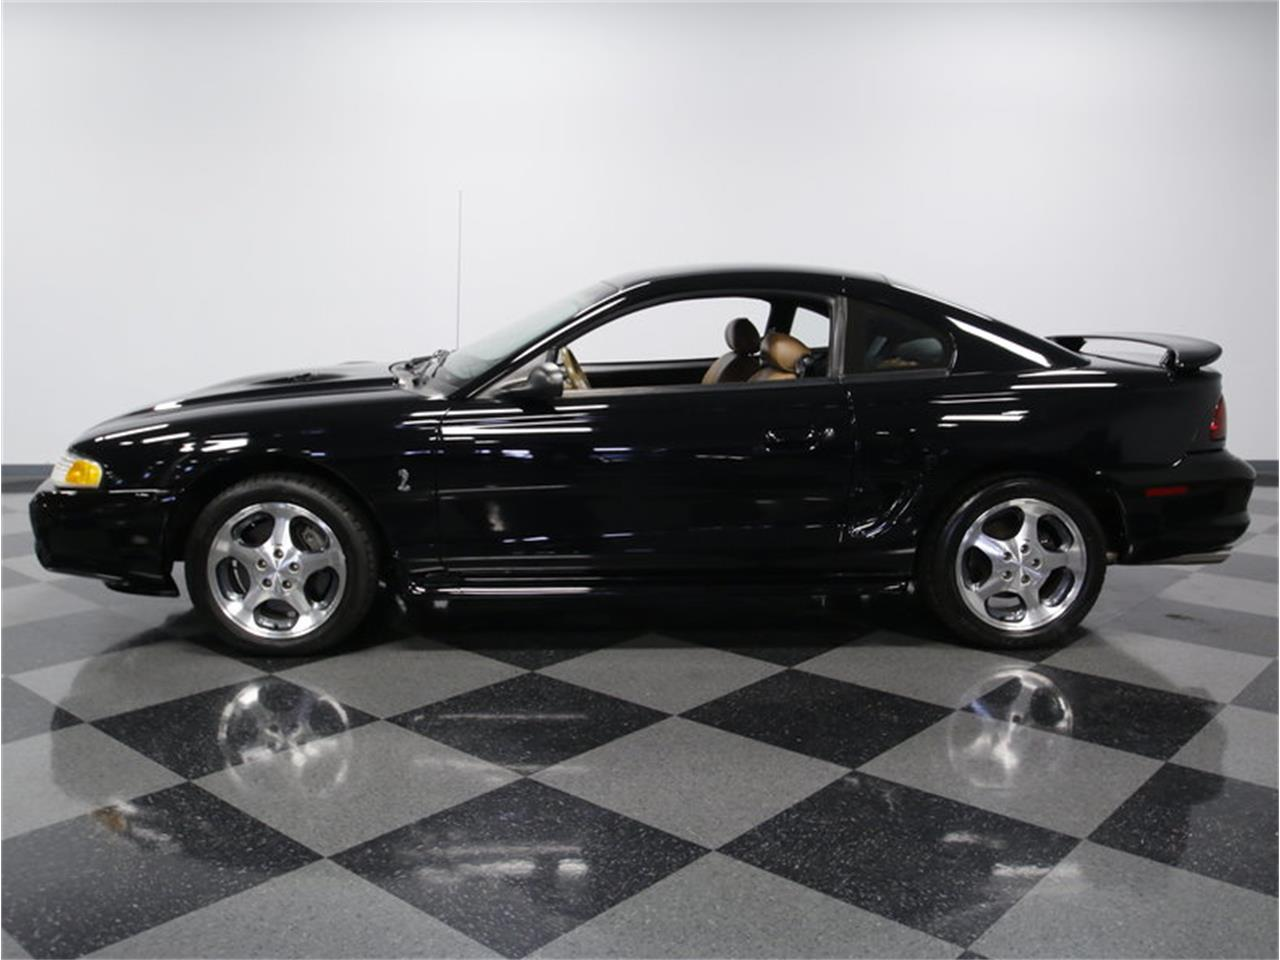 Large picture of 96 mustang cobra kffc